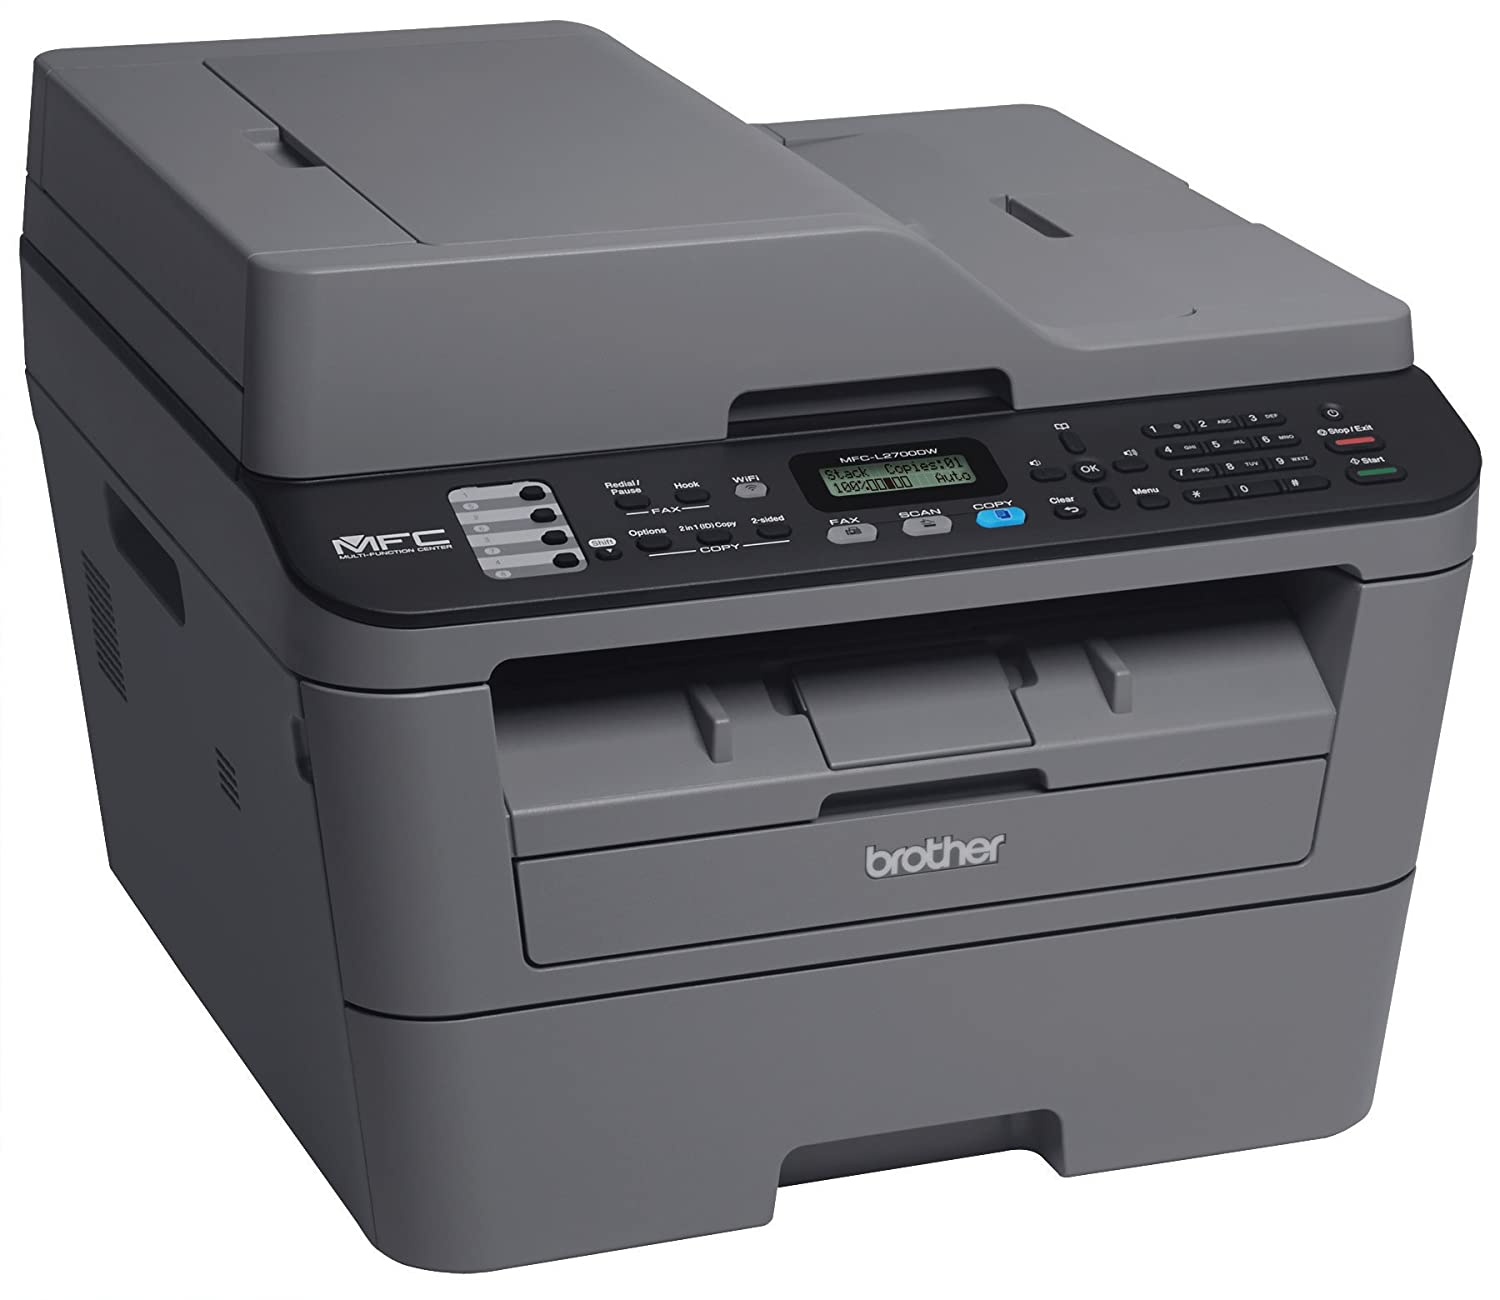 Color printing vs black and white cost - Amazon Com Brother Mfcl2700dw Compact Laser All In One Printer With Wireless Networking And Duplex Printing Electronics